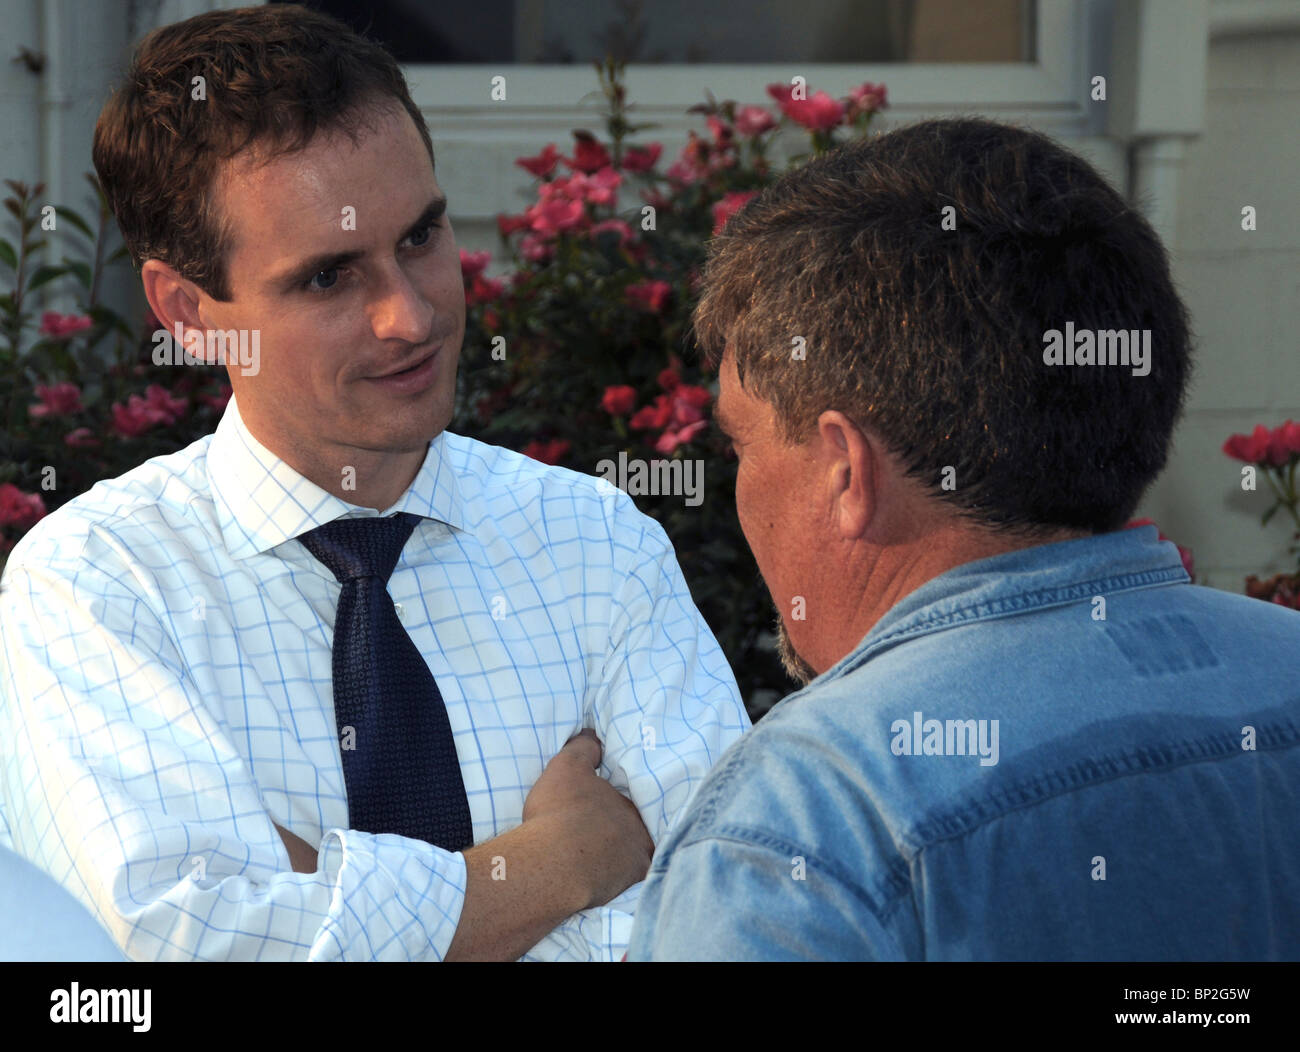 Centreville, Maryland USA Brian Murphy one of the two Republican candidates running for governor talks to a man - Stock Image